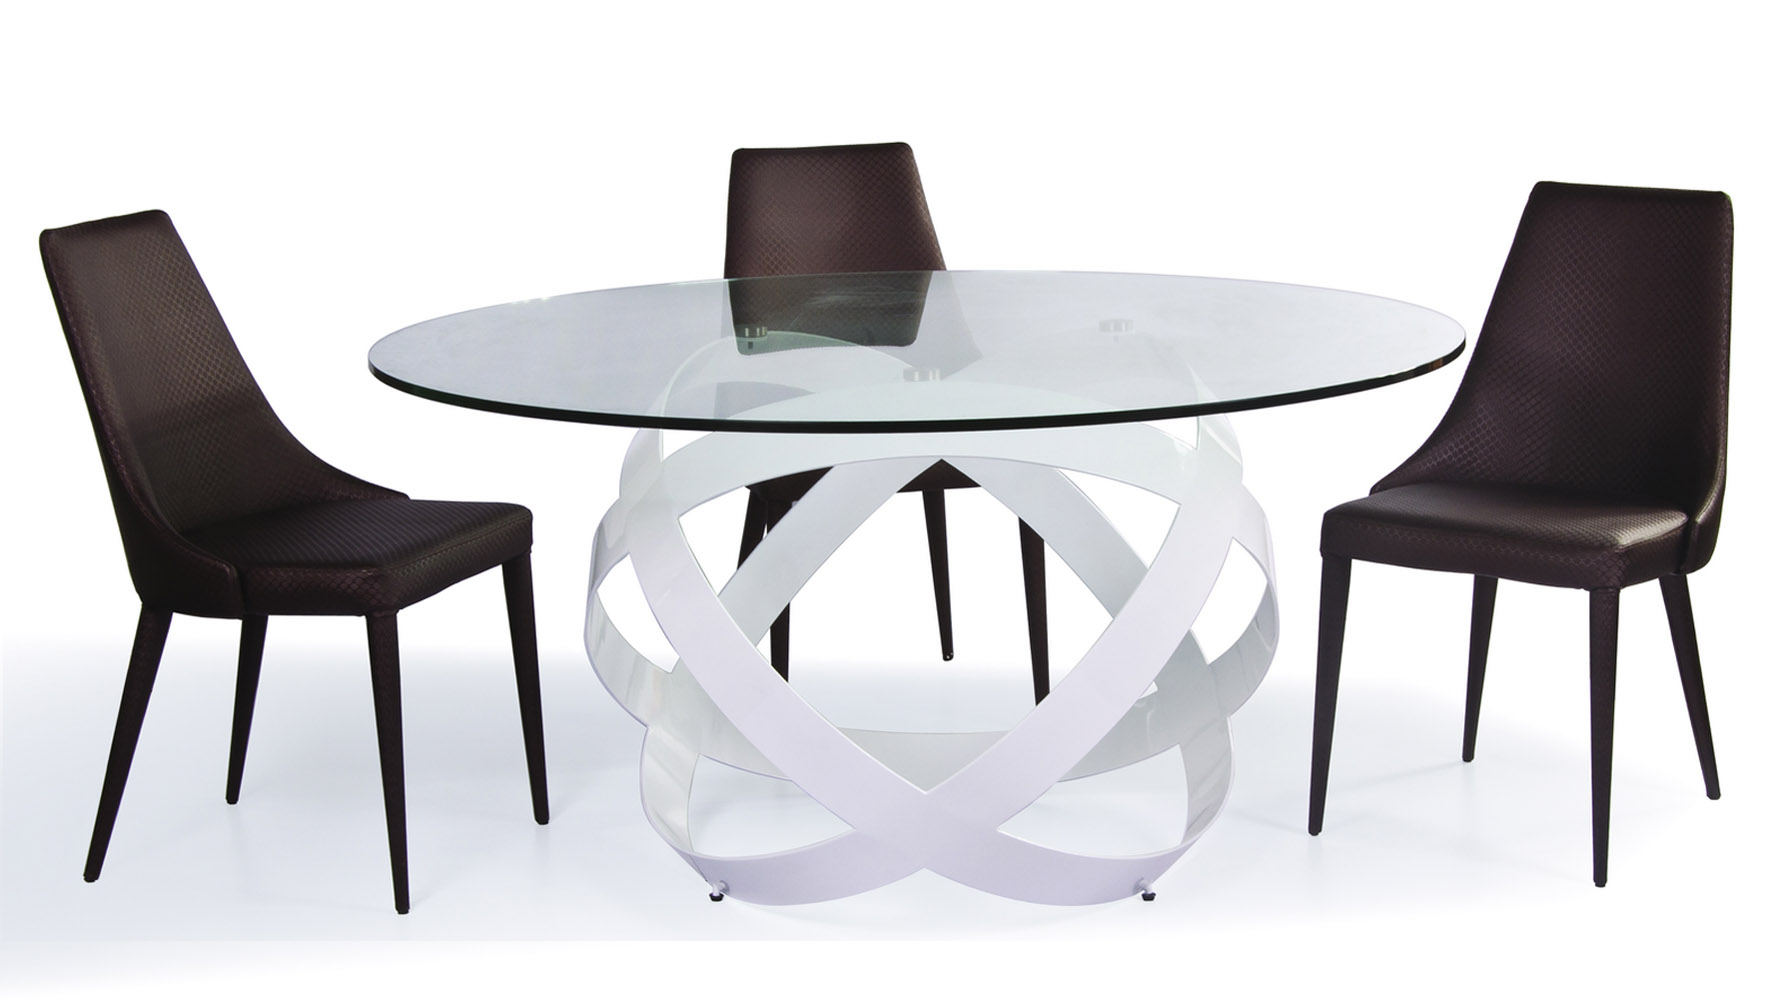 Dining Room Table Modern Part - 48: Dining Room Furniture, Dining Room Tables, Kitchen Tables, Dining Chairs, Dining  Room Sets | Zuri Furniture